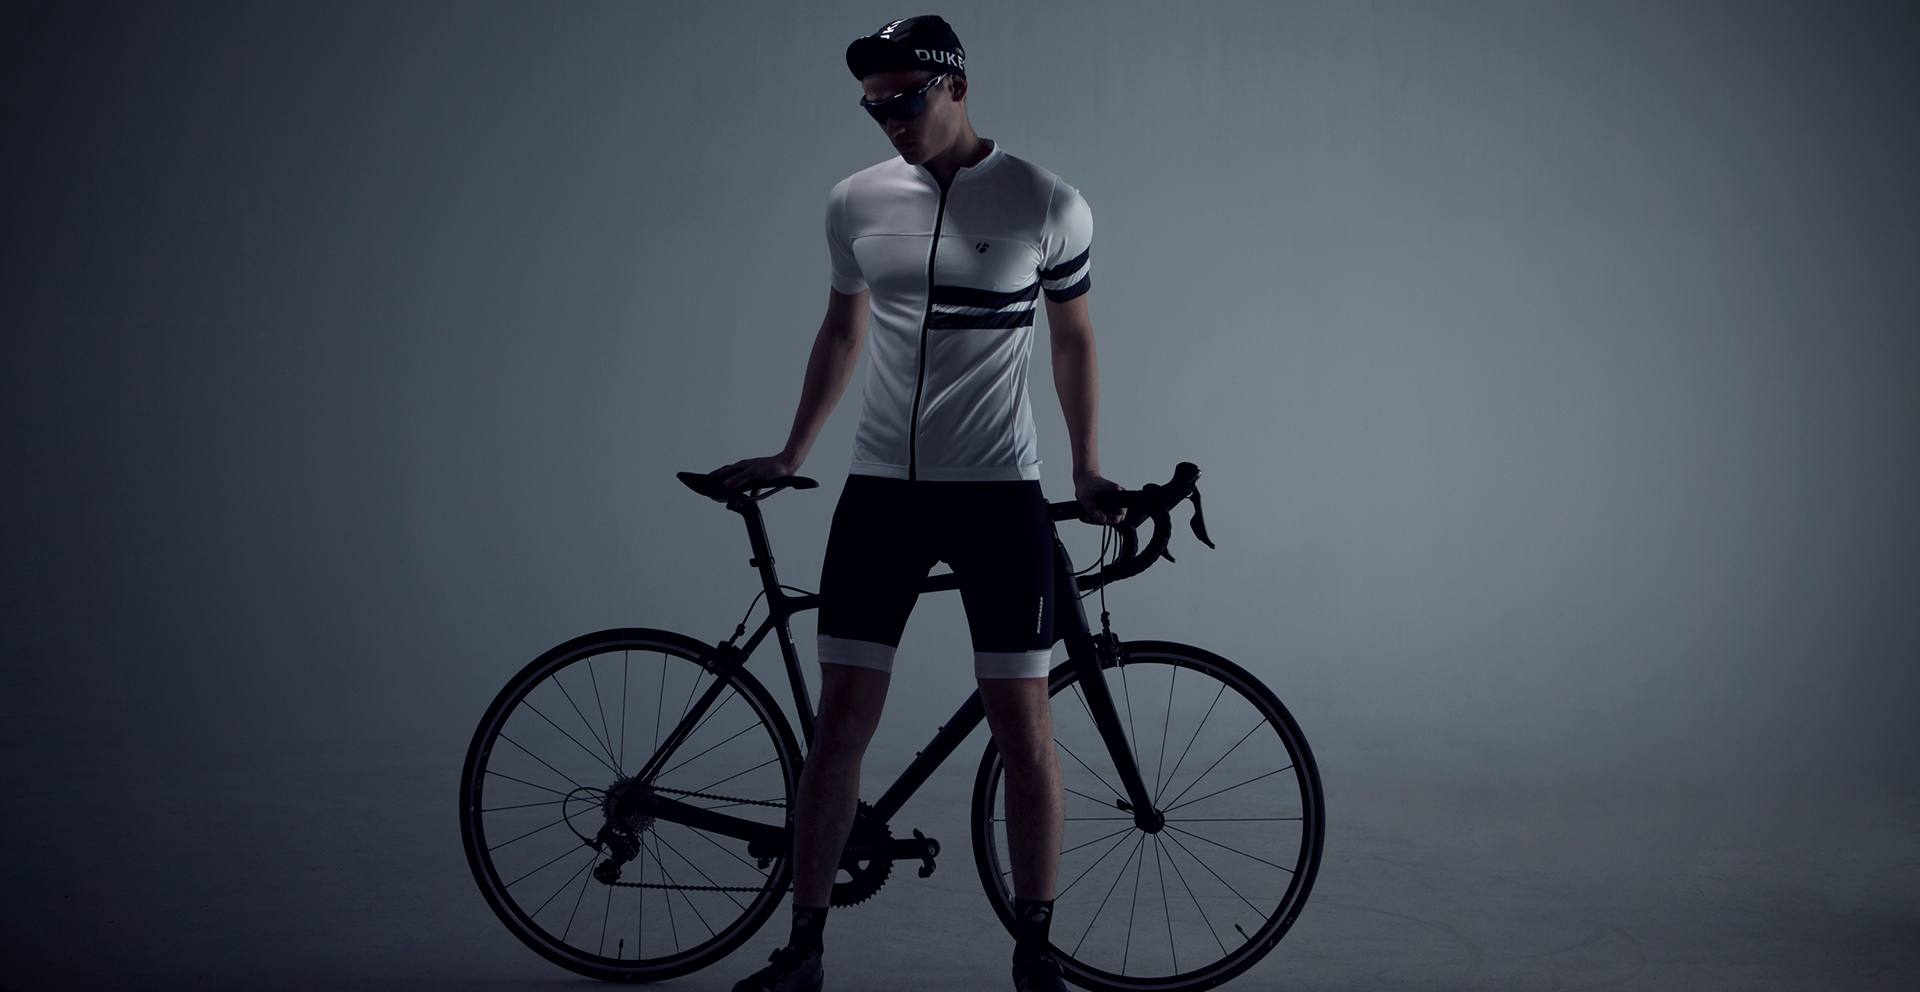 Trek Cycling Apparel Design